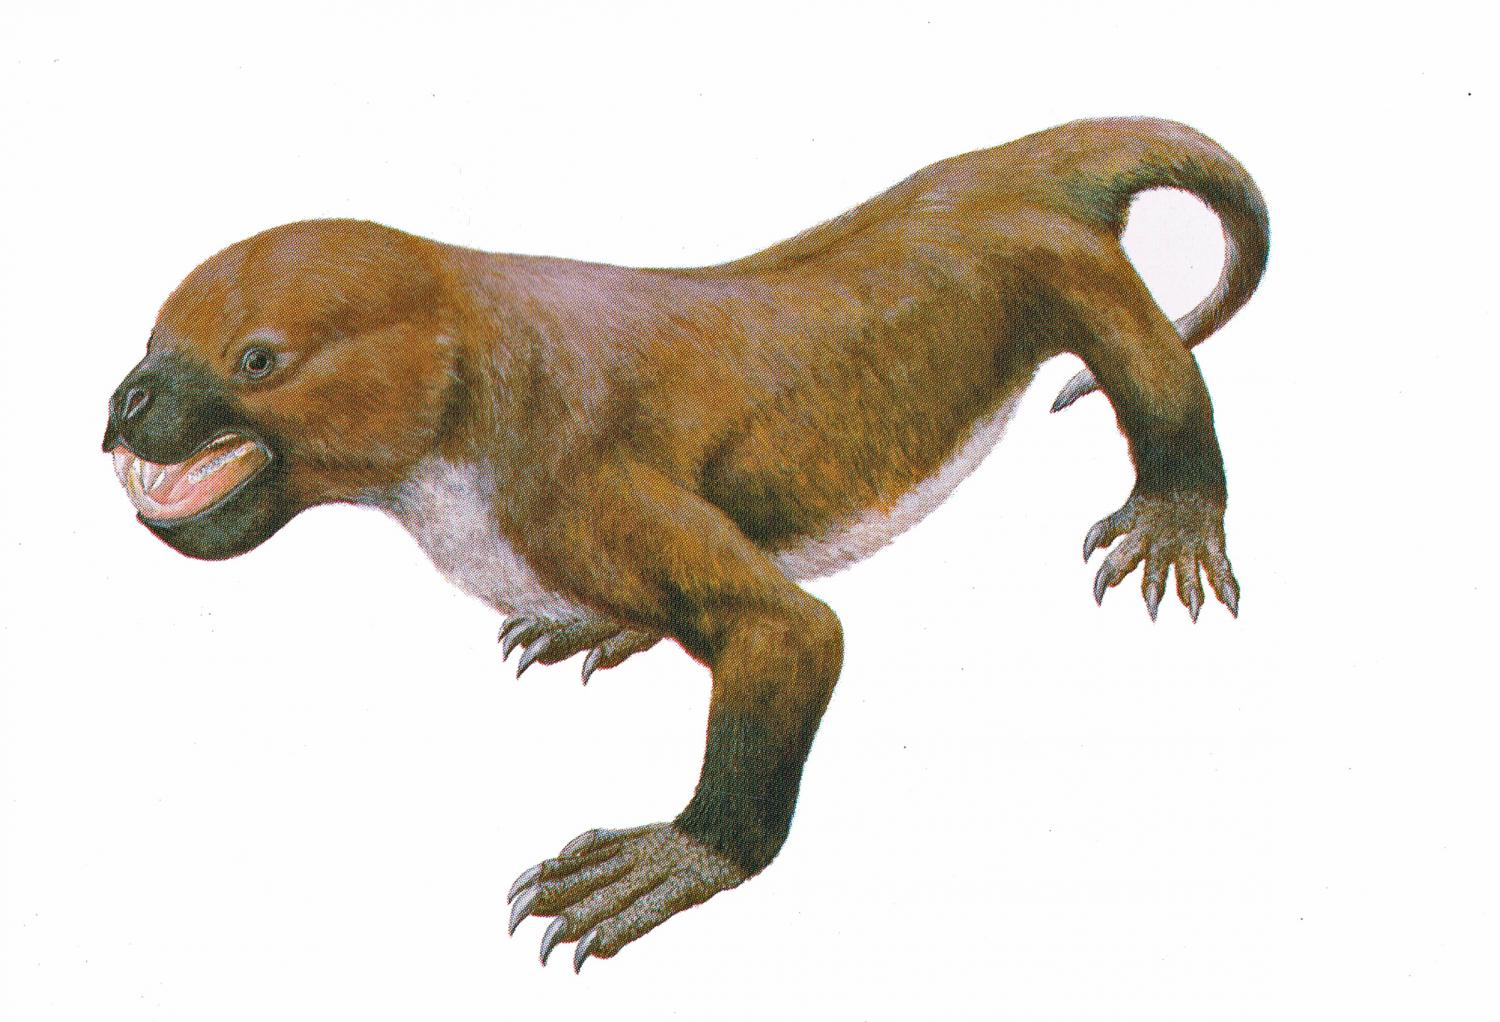 mammal like reptile survived much longer than thought